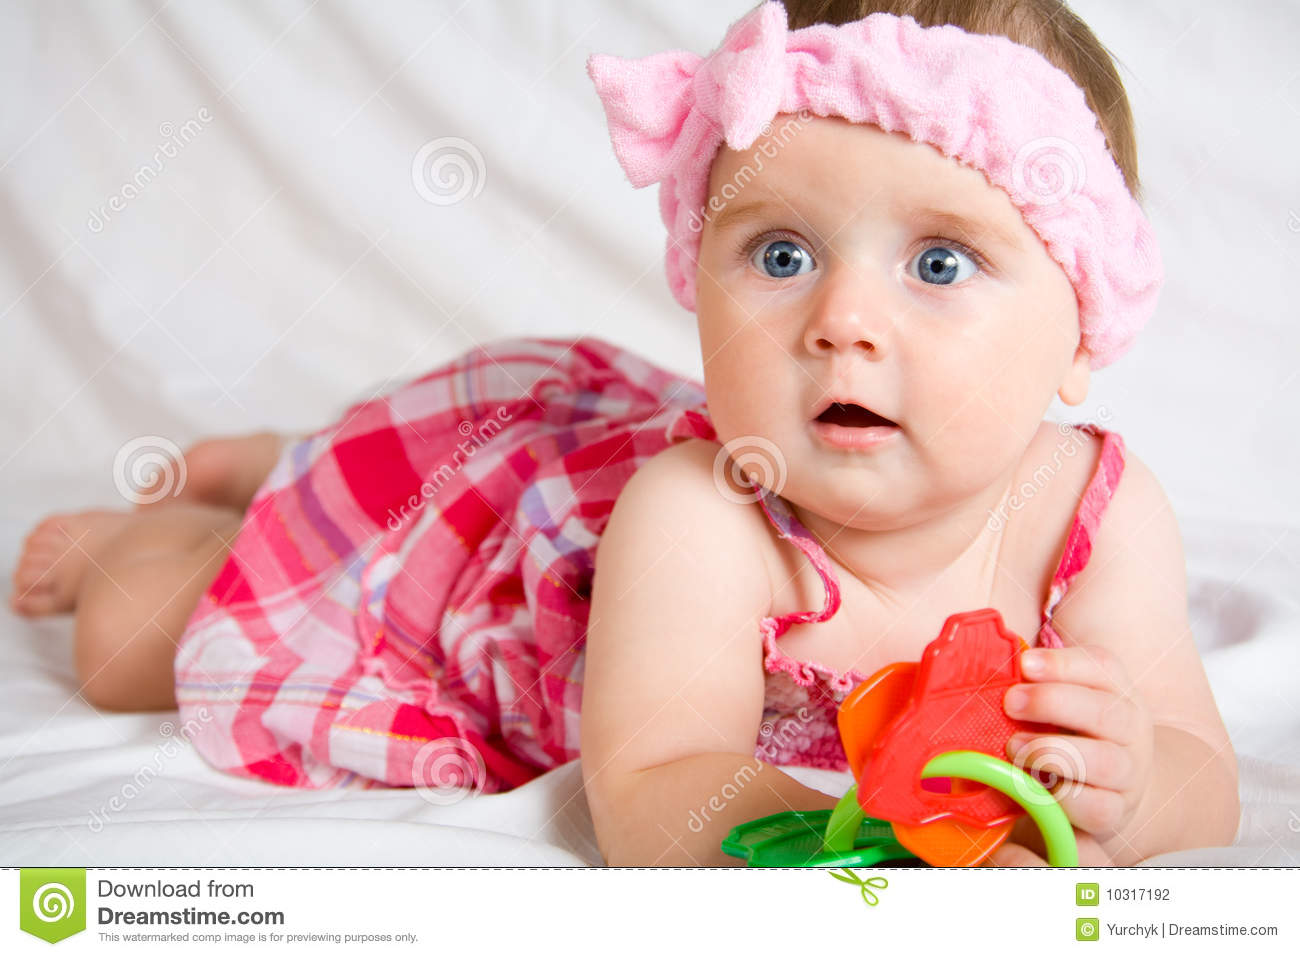 Sweet And Cute Wallpapers For Mobile Cute Little Baby Girl Stock Photography Image 10317192